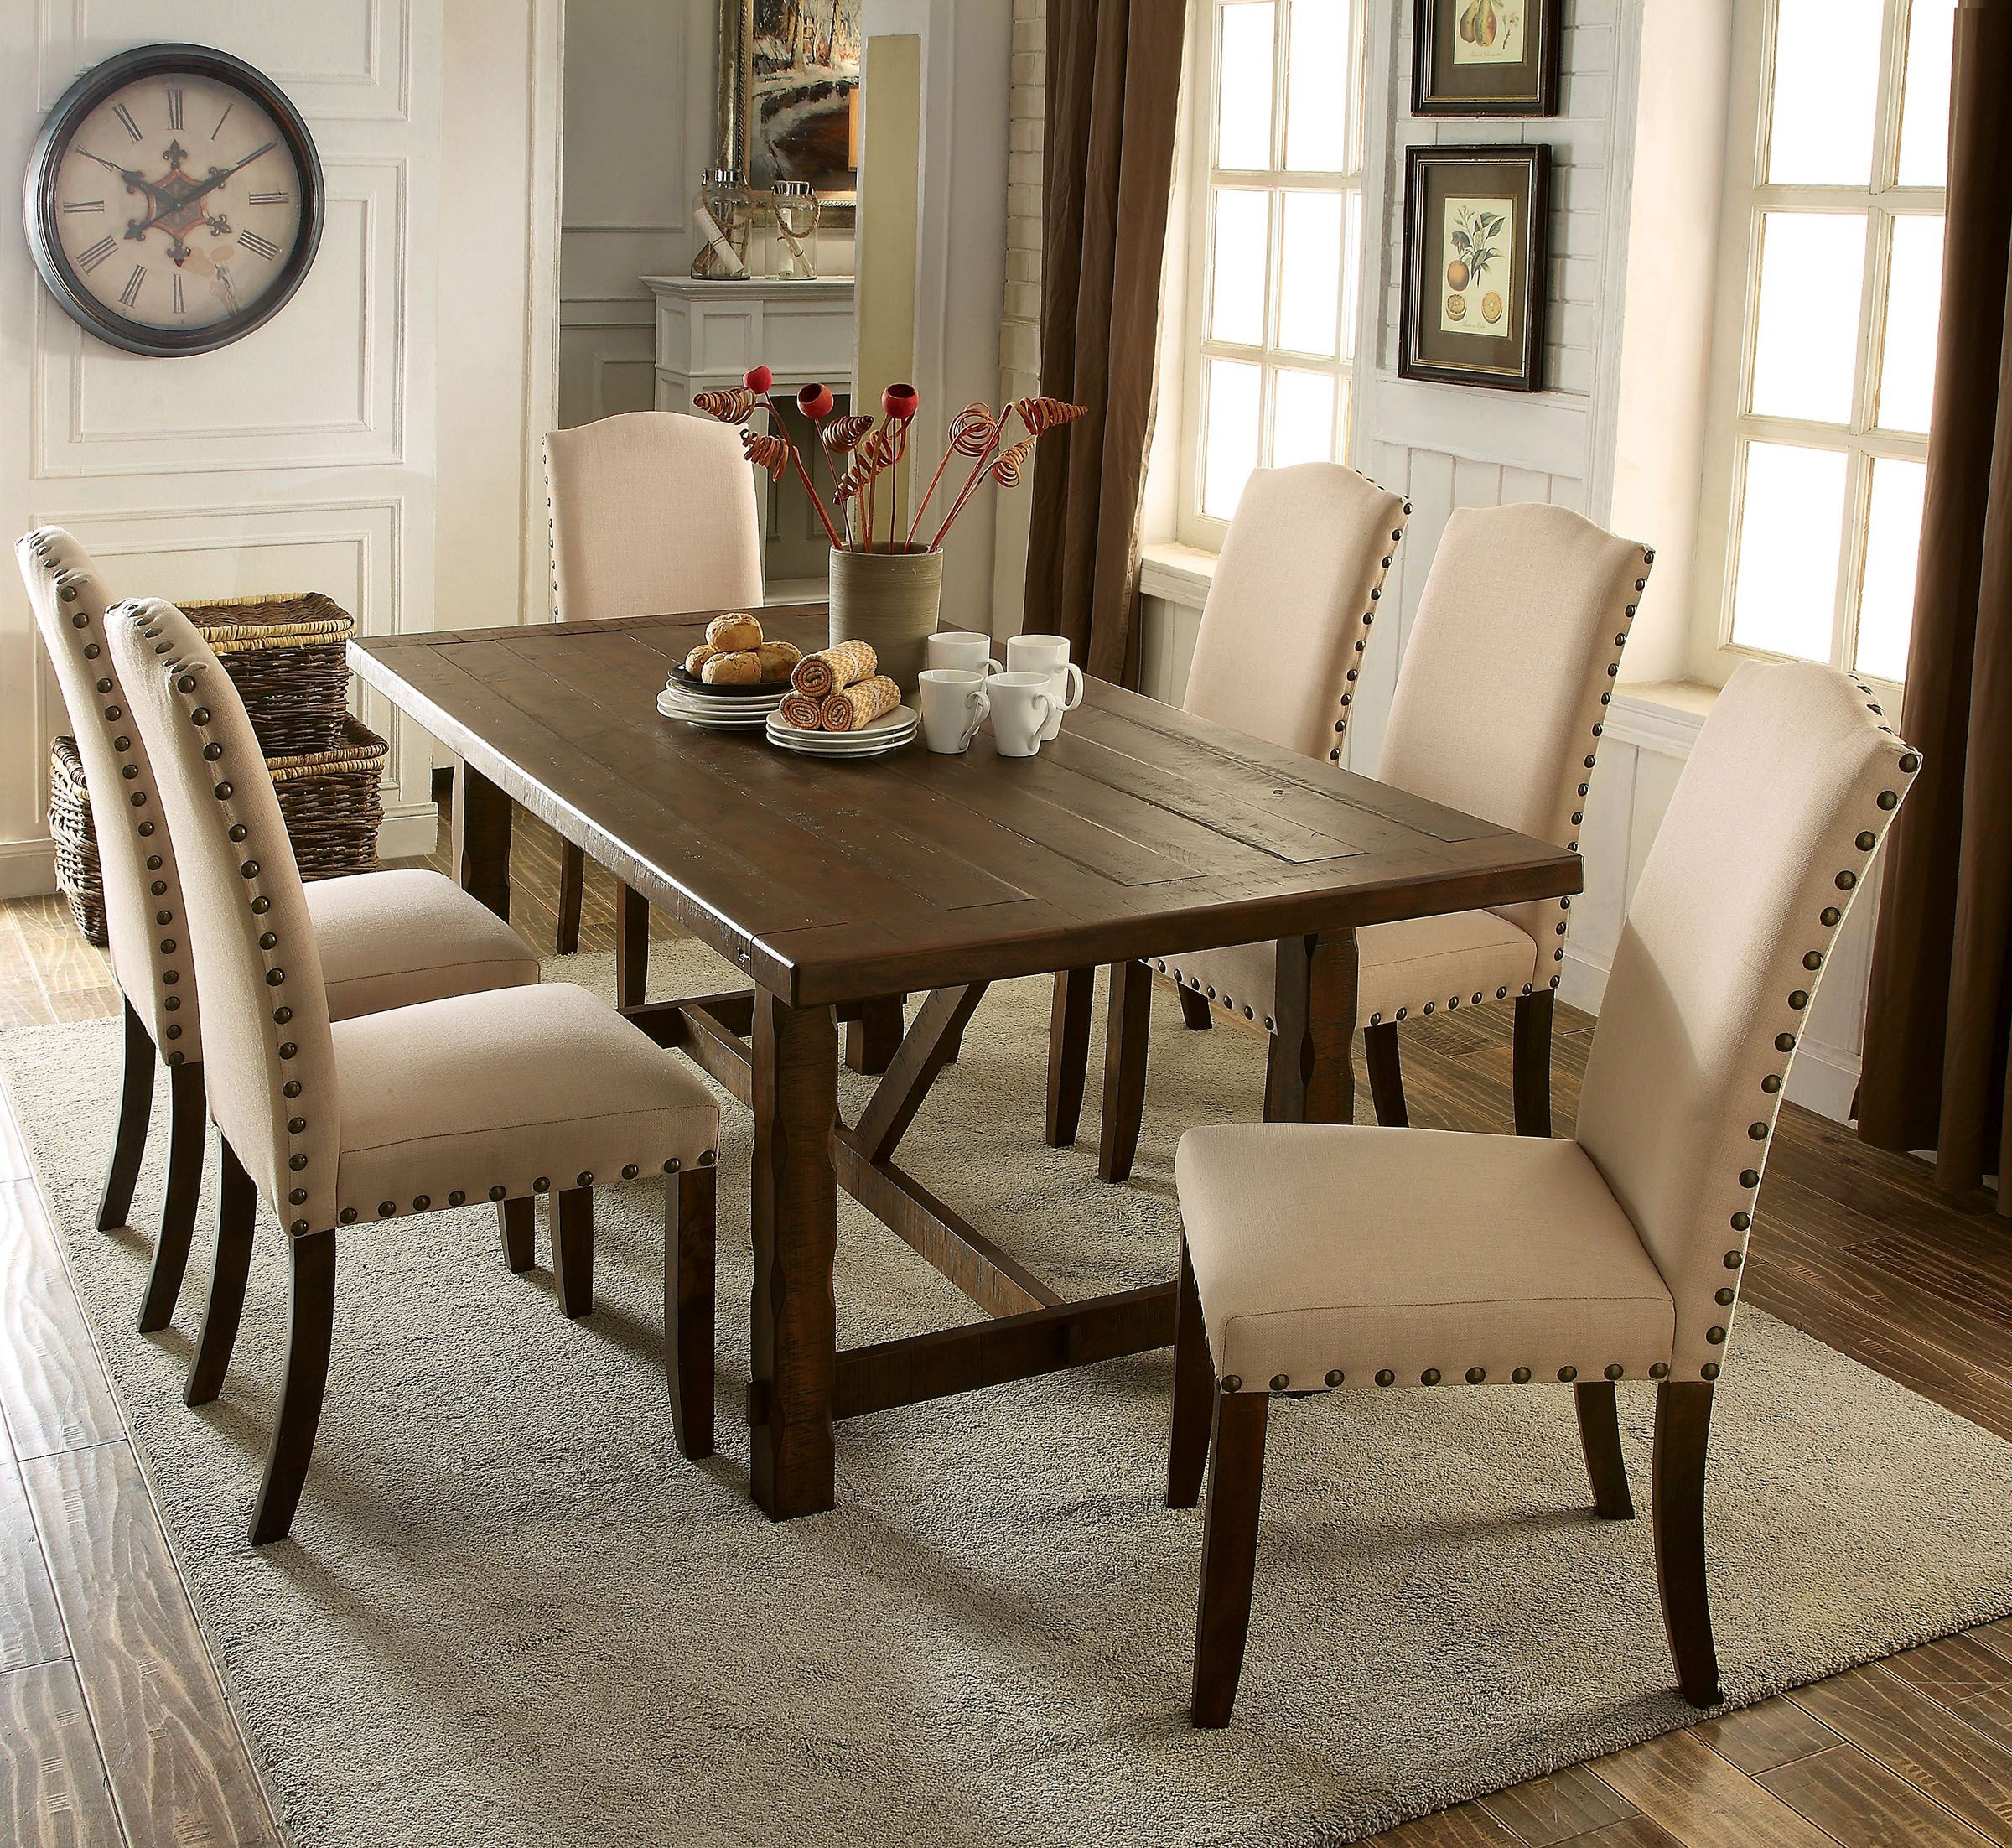 Rustic Dining Room Table Sets: Brentford Rustic Walnut Rectangular Dining Room Set From